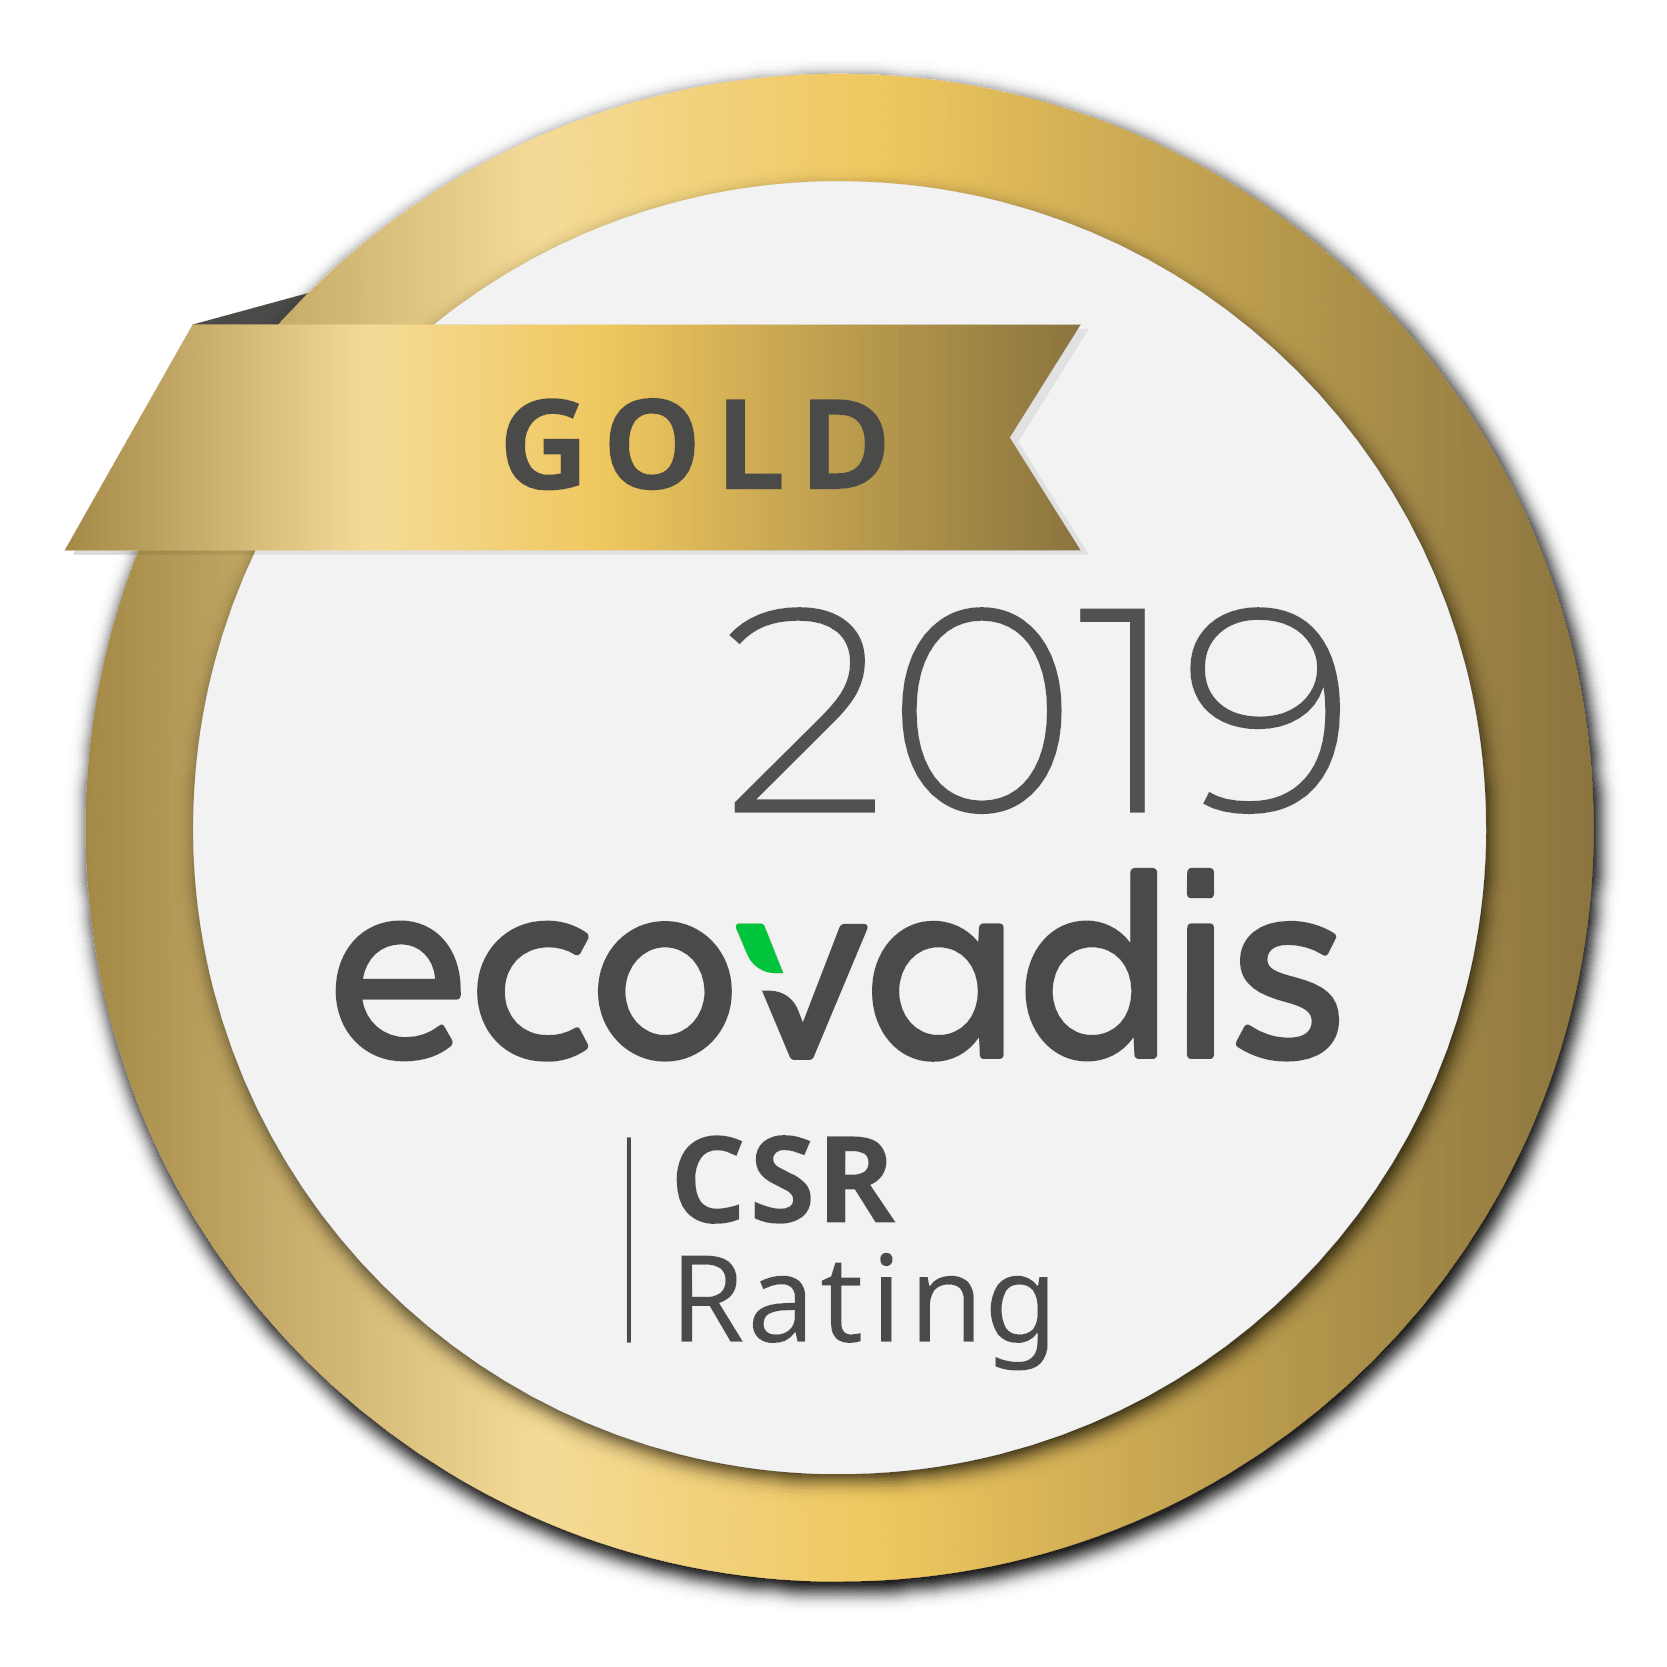 Certification BV : Ecovadis Gold